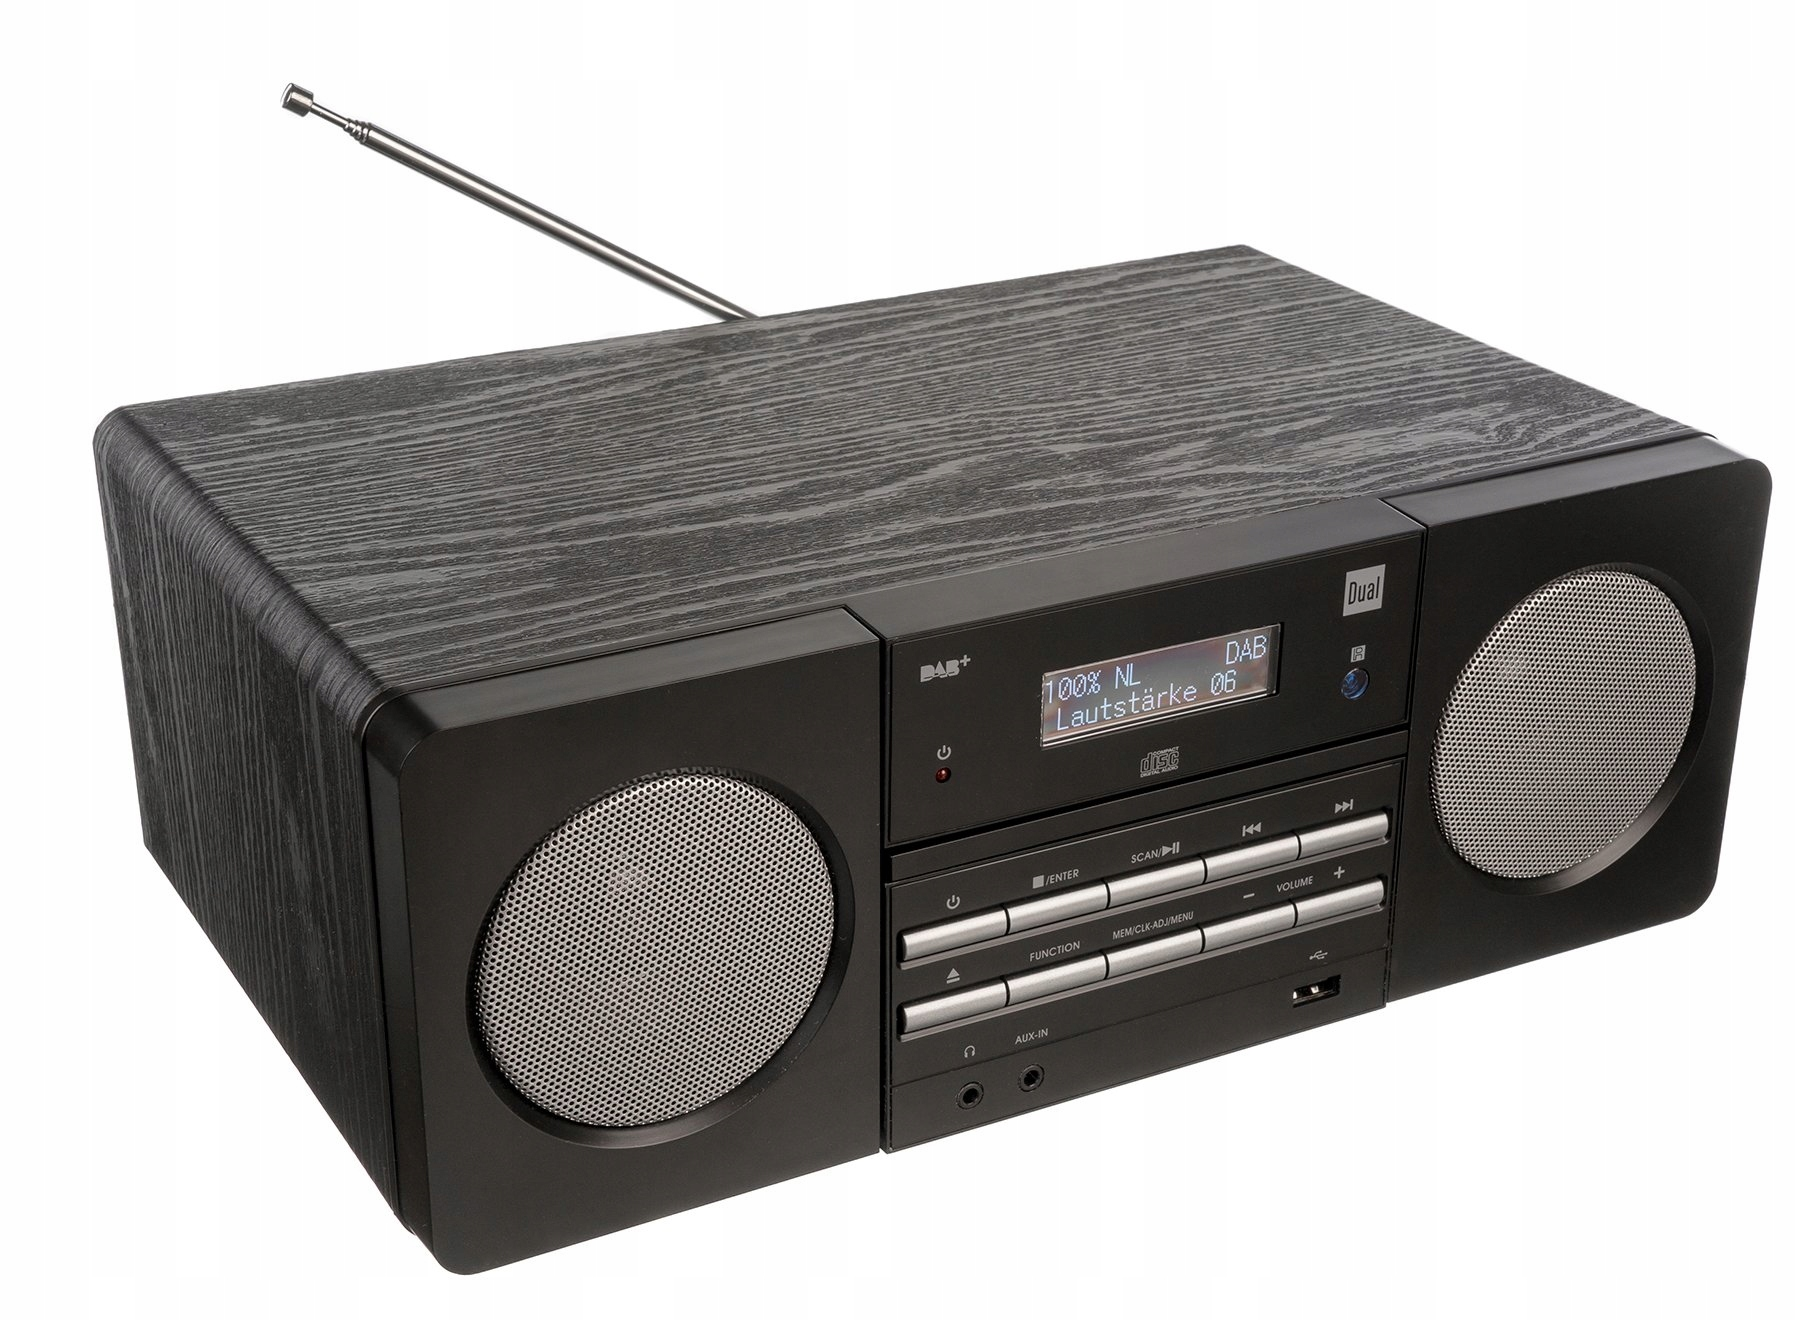 DAB + FM ЦИФРОВОЕ РАДИО PLL CD MP3 USB AUX IN WOOD